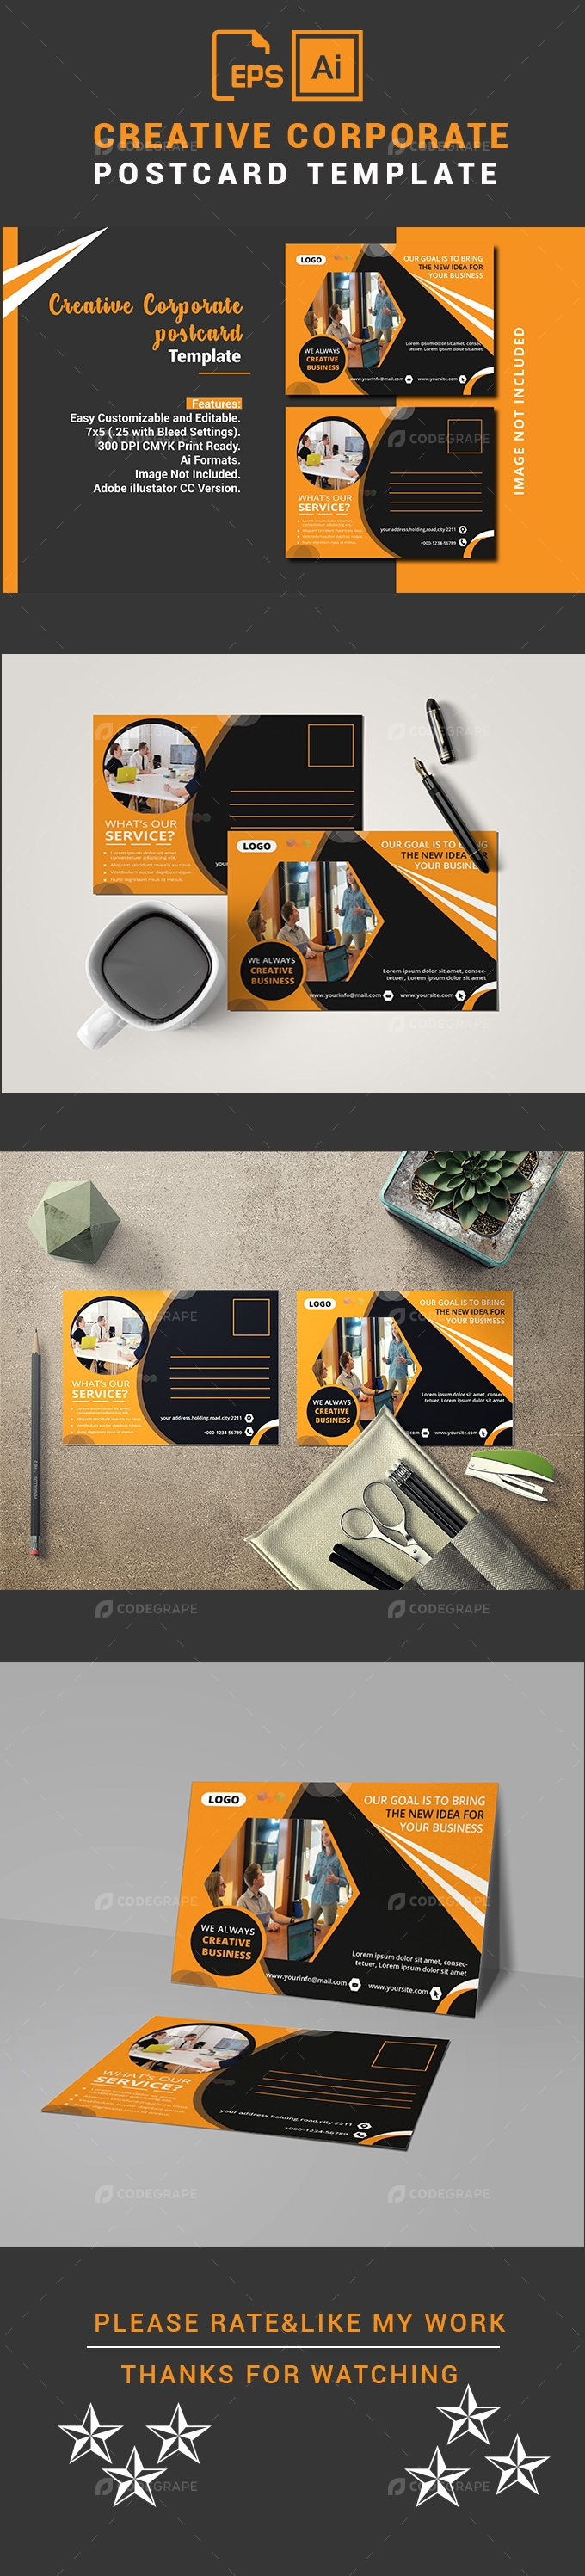 Creative Corporate Postcard Template